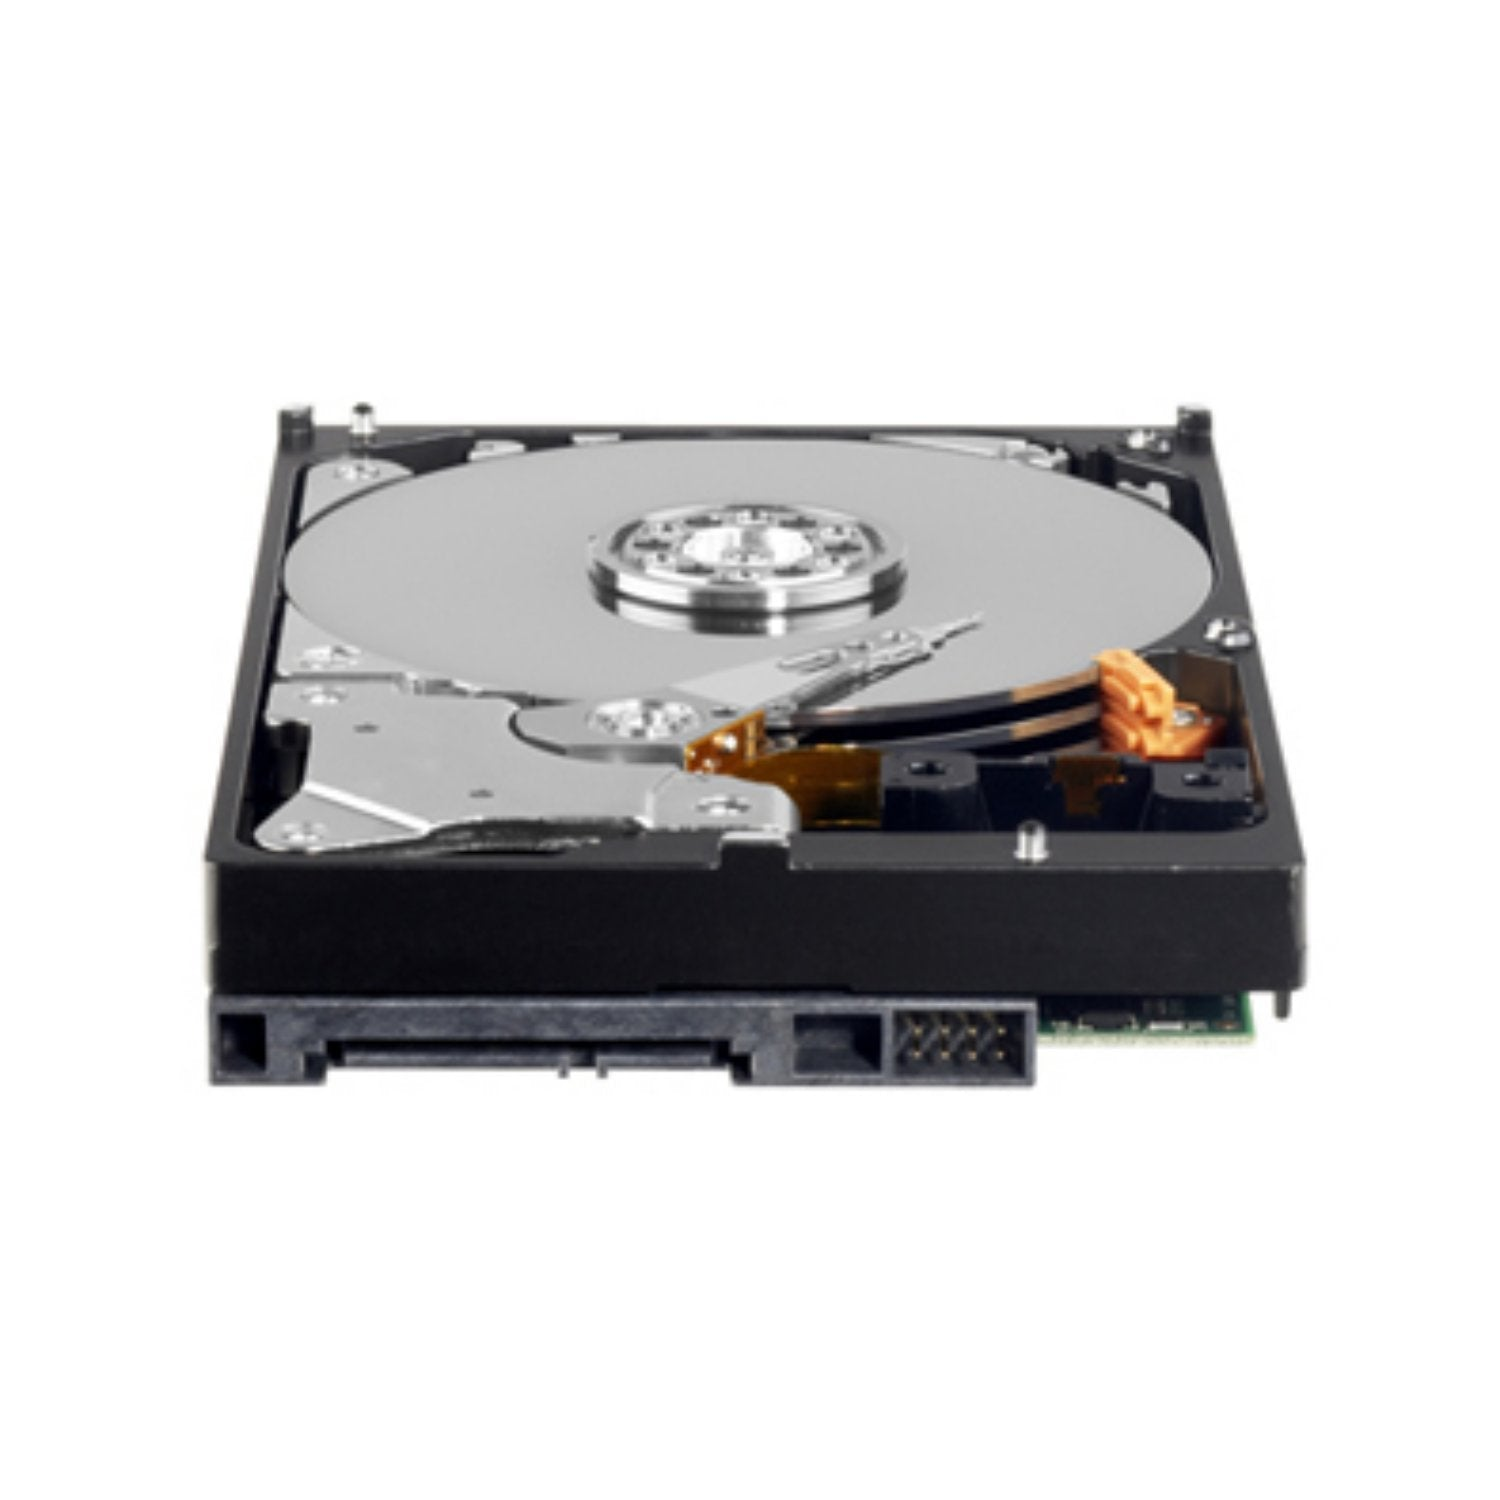 4TB WD AV (3 YEAR Warranty) | 3.5-Inch 64 MB Buffer Internal Hard Drive